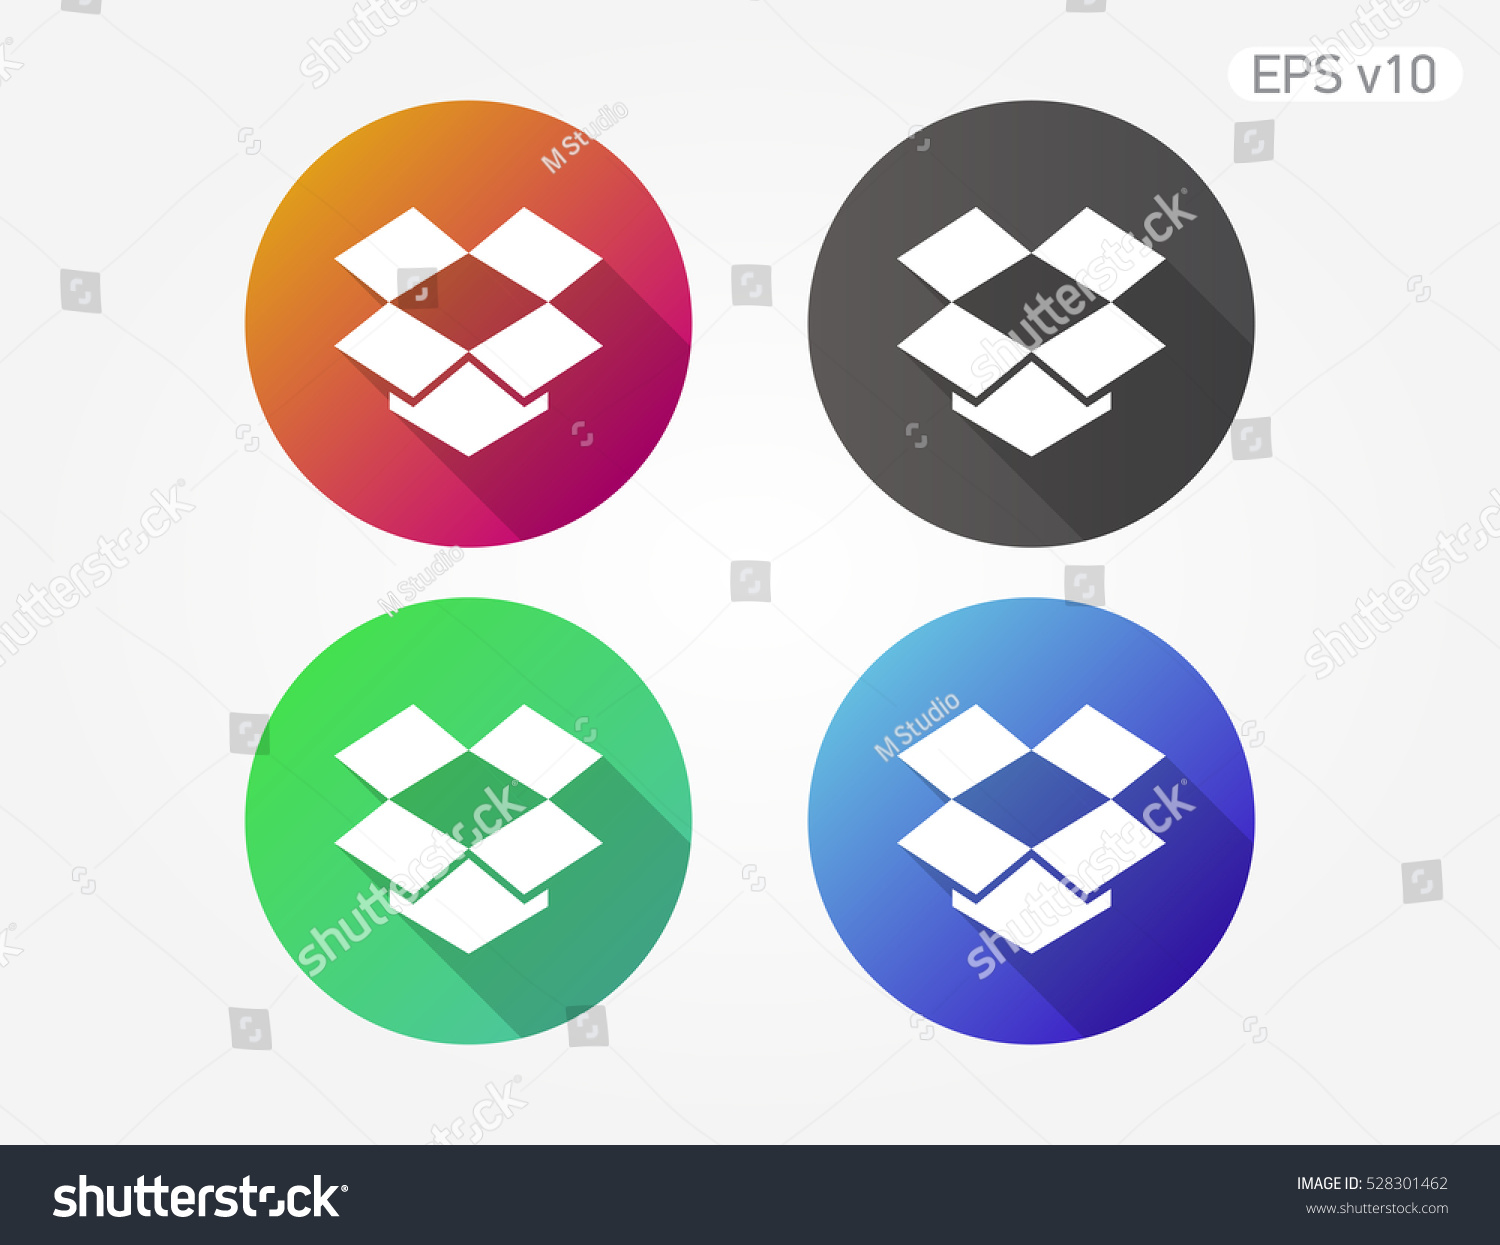 Colored icon open box symbol shadow stock vector 528301462 colored icon of open box symbol with shadow biocorpaavc Choice Image